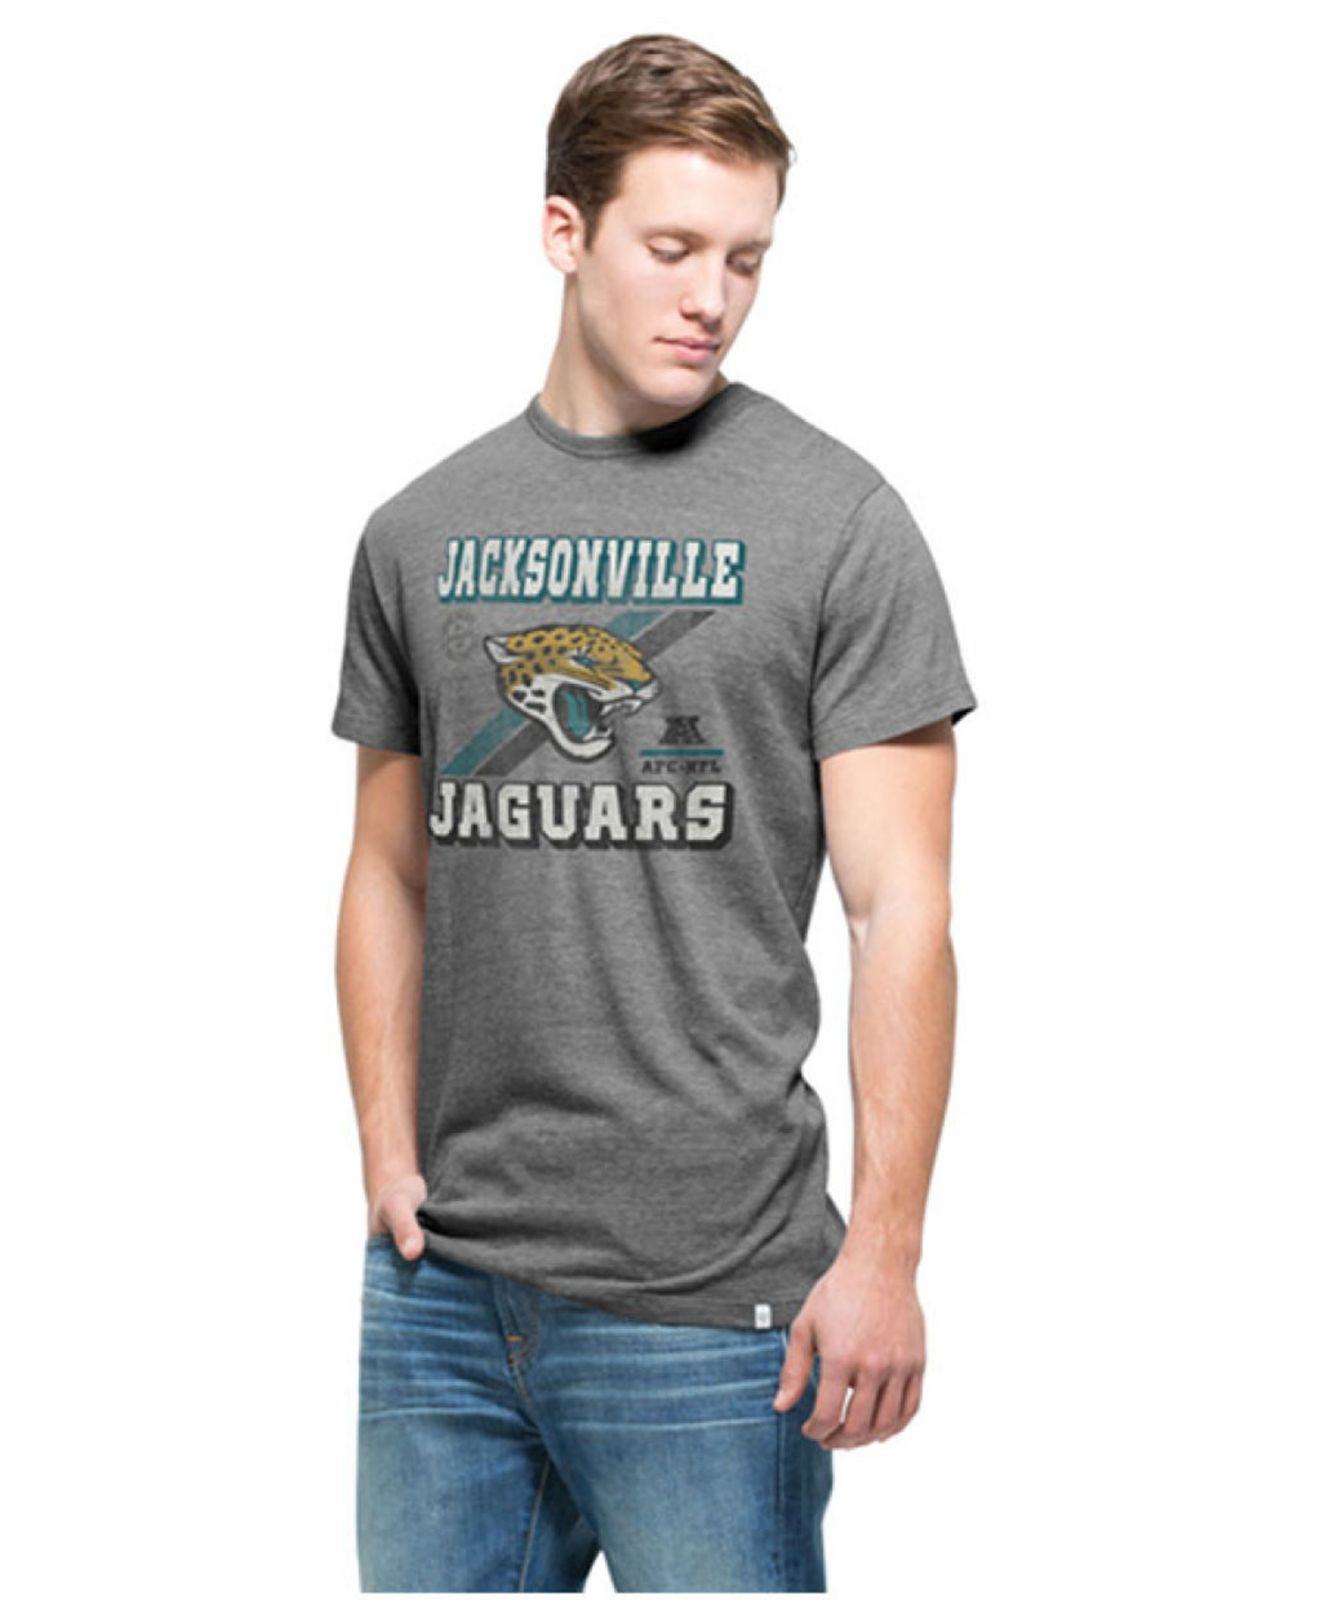 kings jaguar kingsofthesouthfront jacksonville smack t shirts the products apparel fans south of jaguars shirt